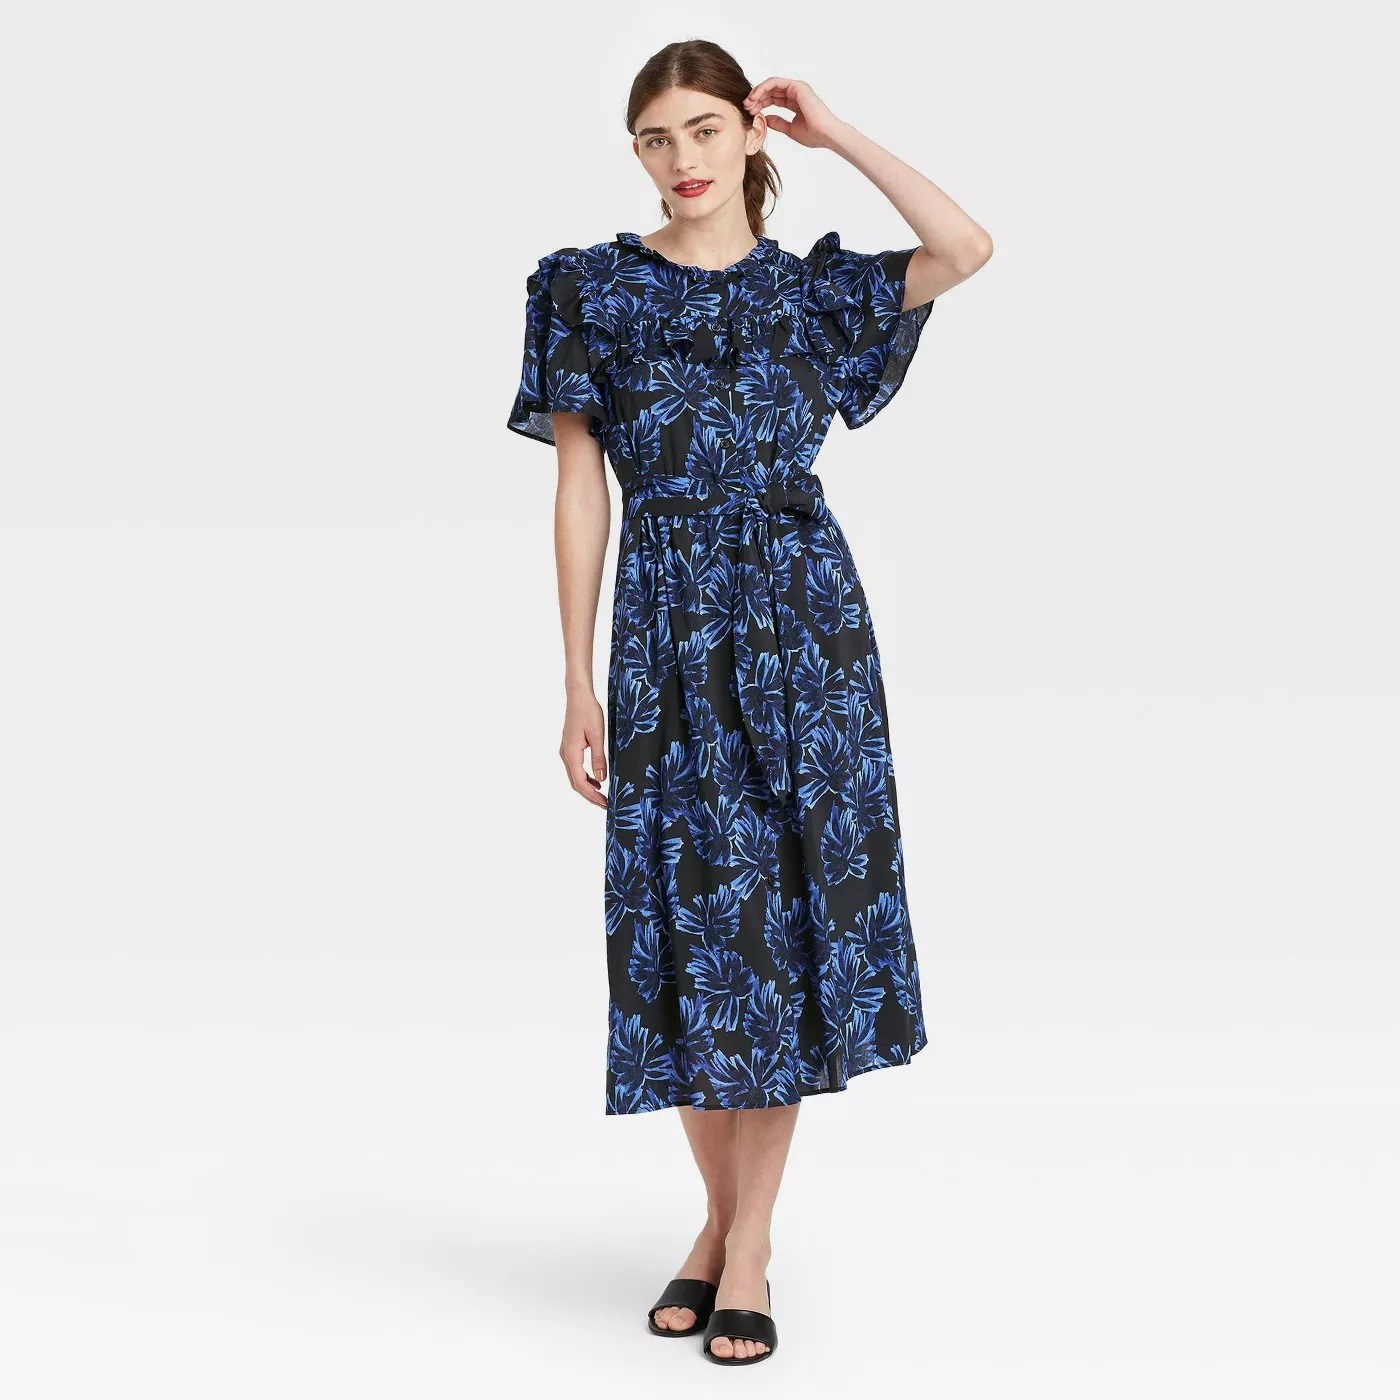 Model wearing midi dress with black and blue leaf pattern, goes past the knee